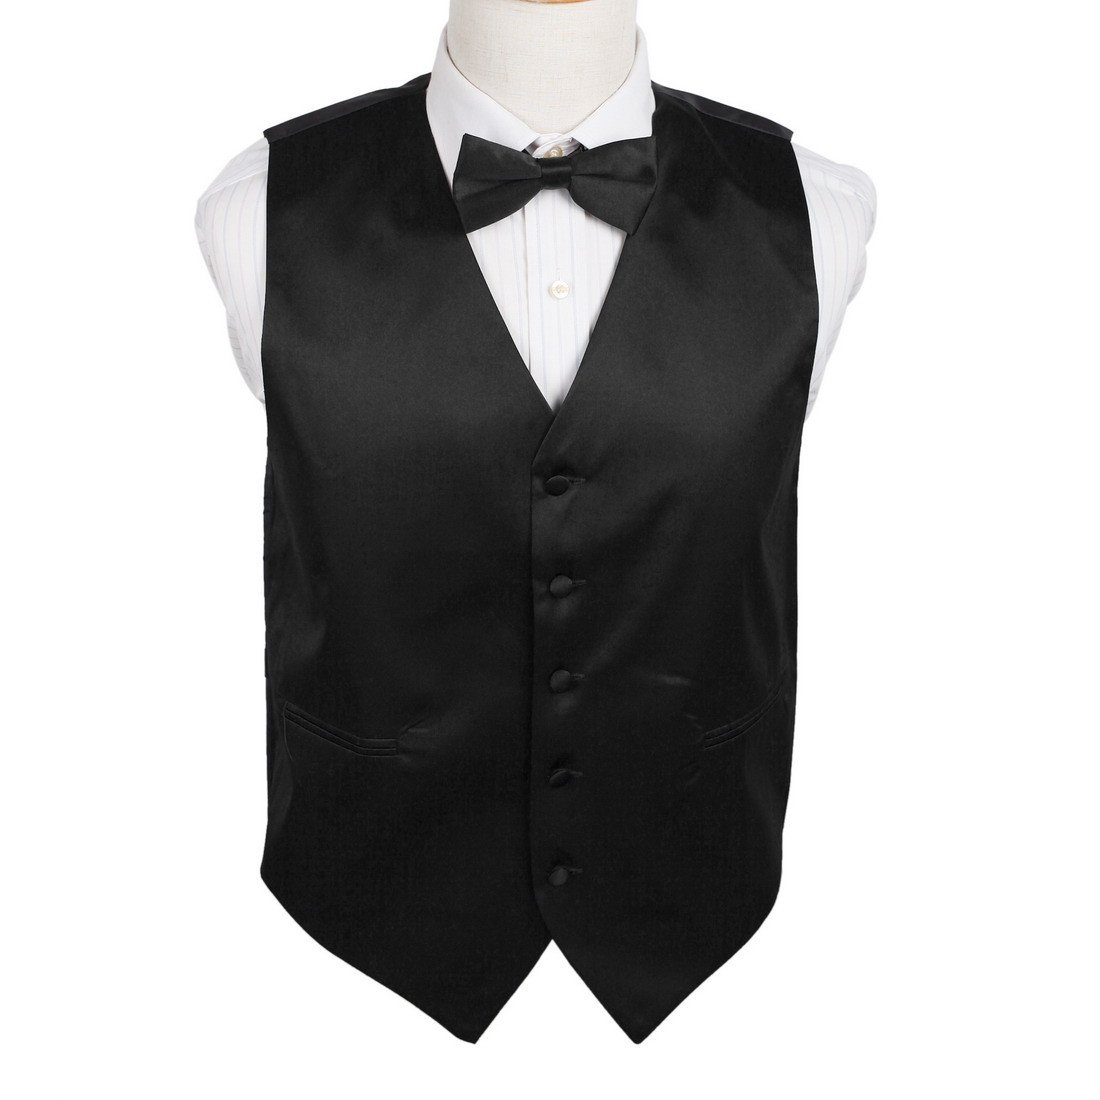 Dan Smith DGEE.01 Italy Series Plain Microfiber Fashion Vest Matching Bow Tie by